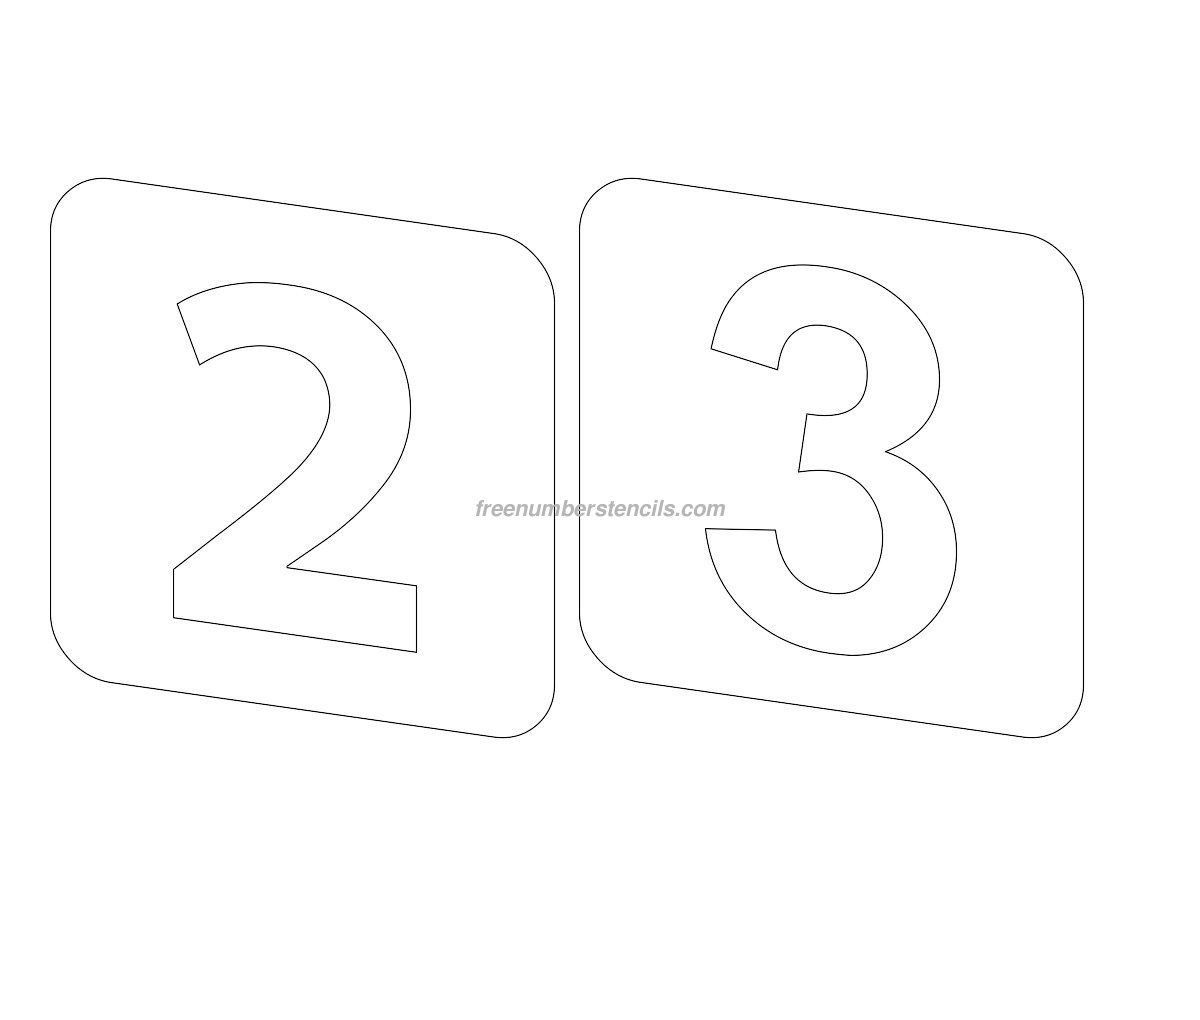 free number templates to print - printable number stencils large number stencils